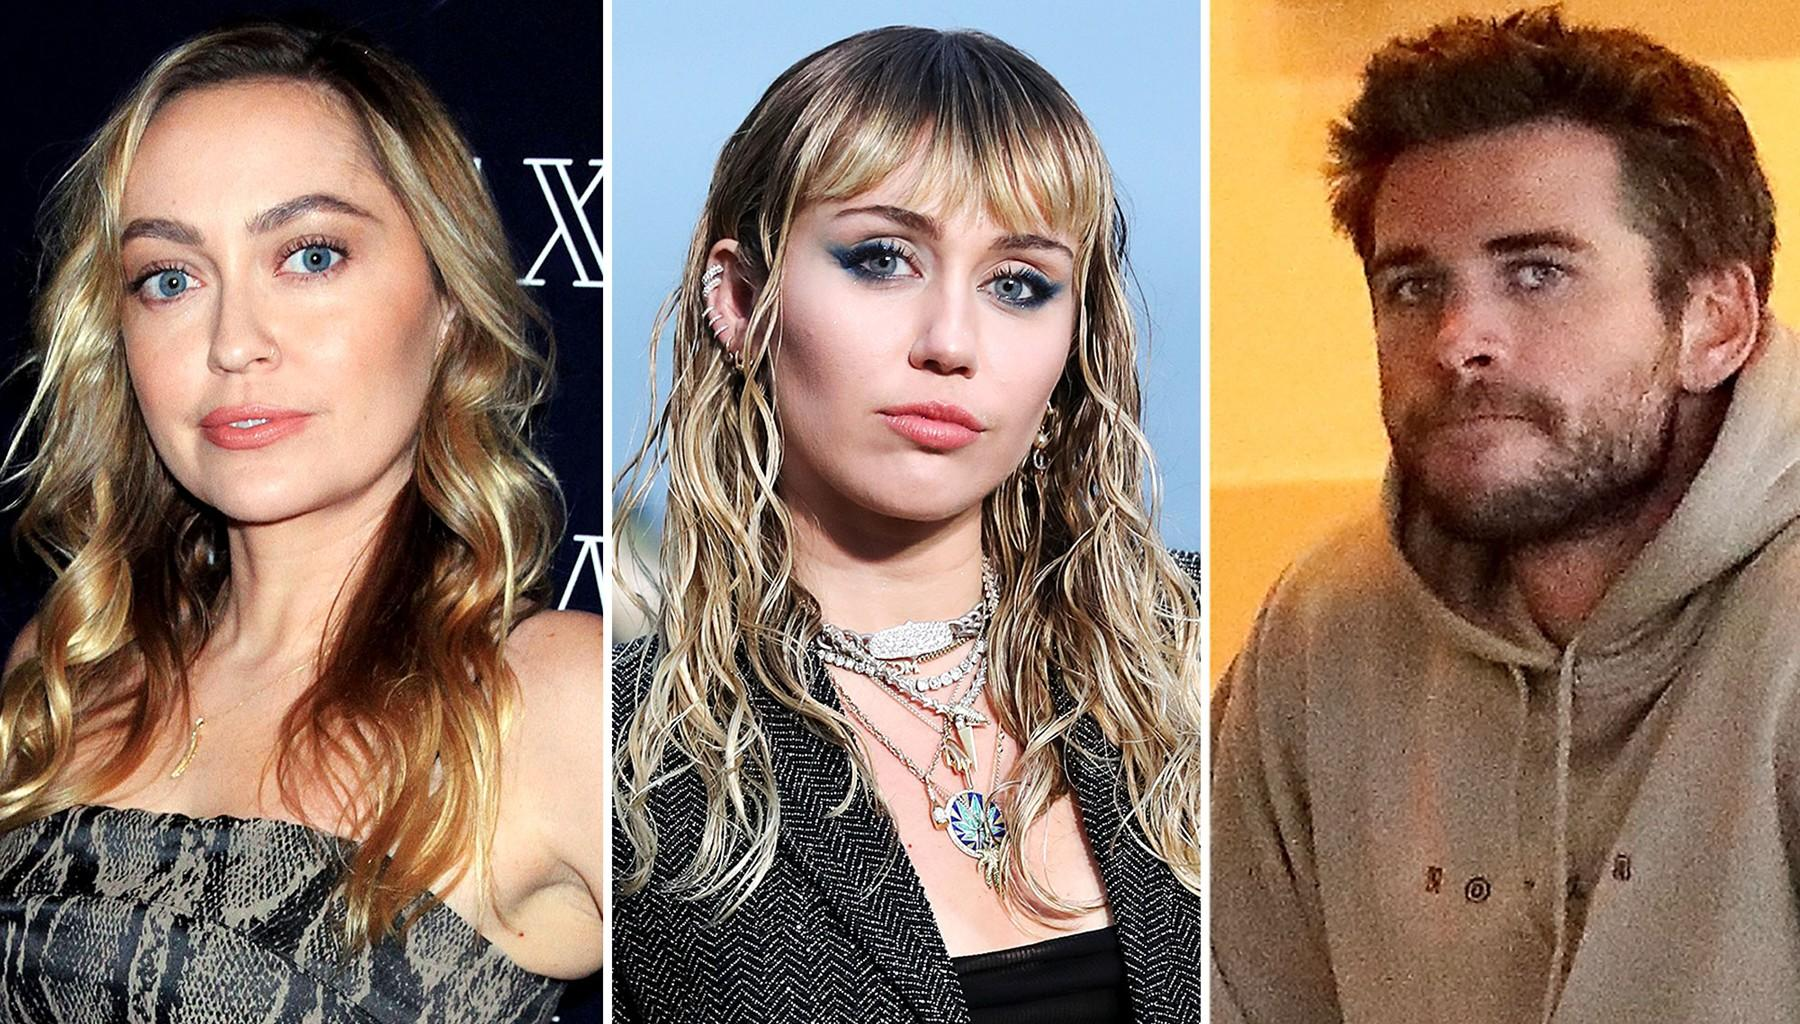 Miley Cyrus May Have Shown Some Red Flags In Marriage With Liam Hemsworth Before Breakup